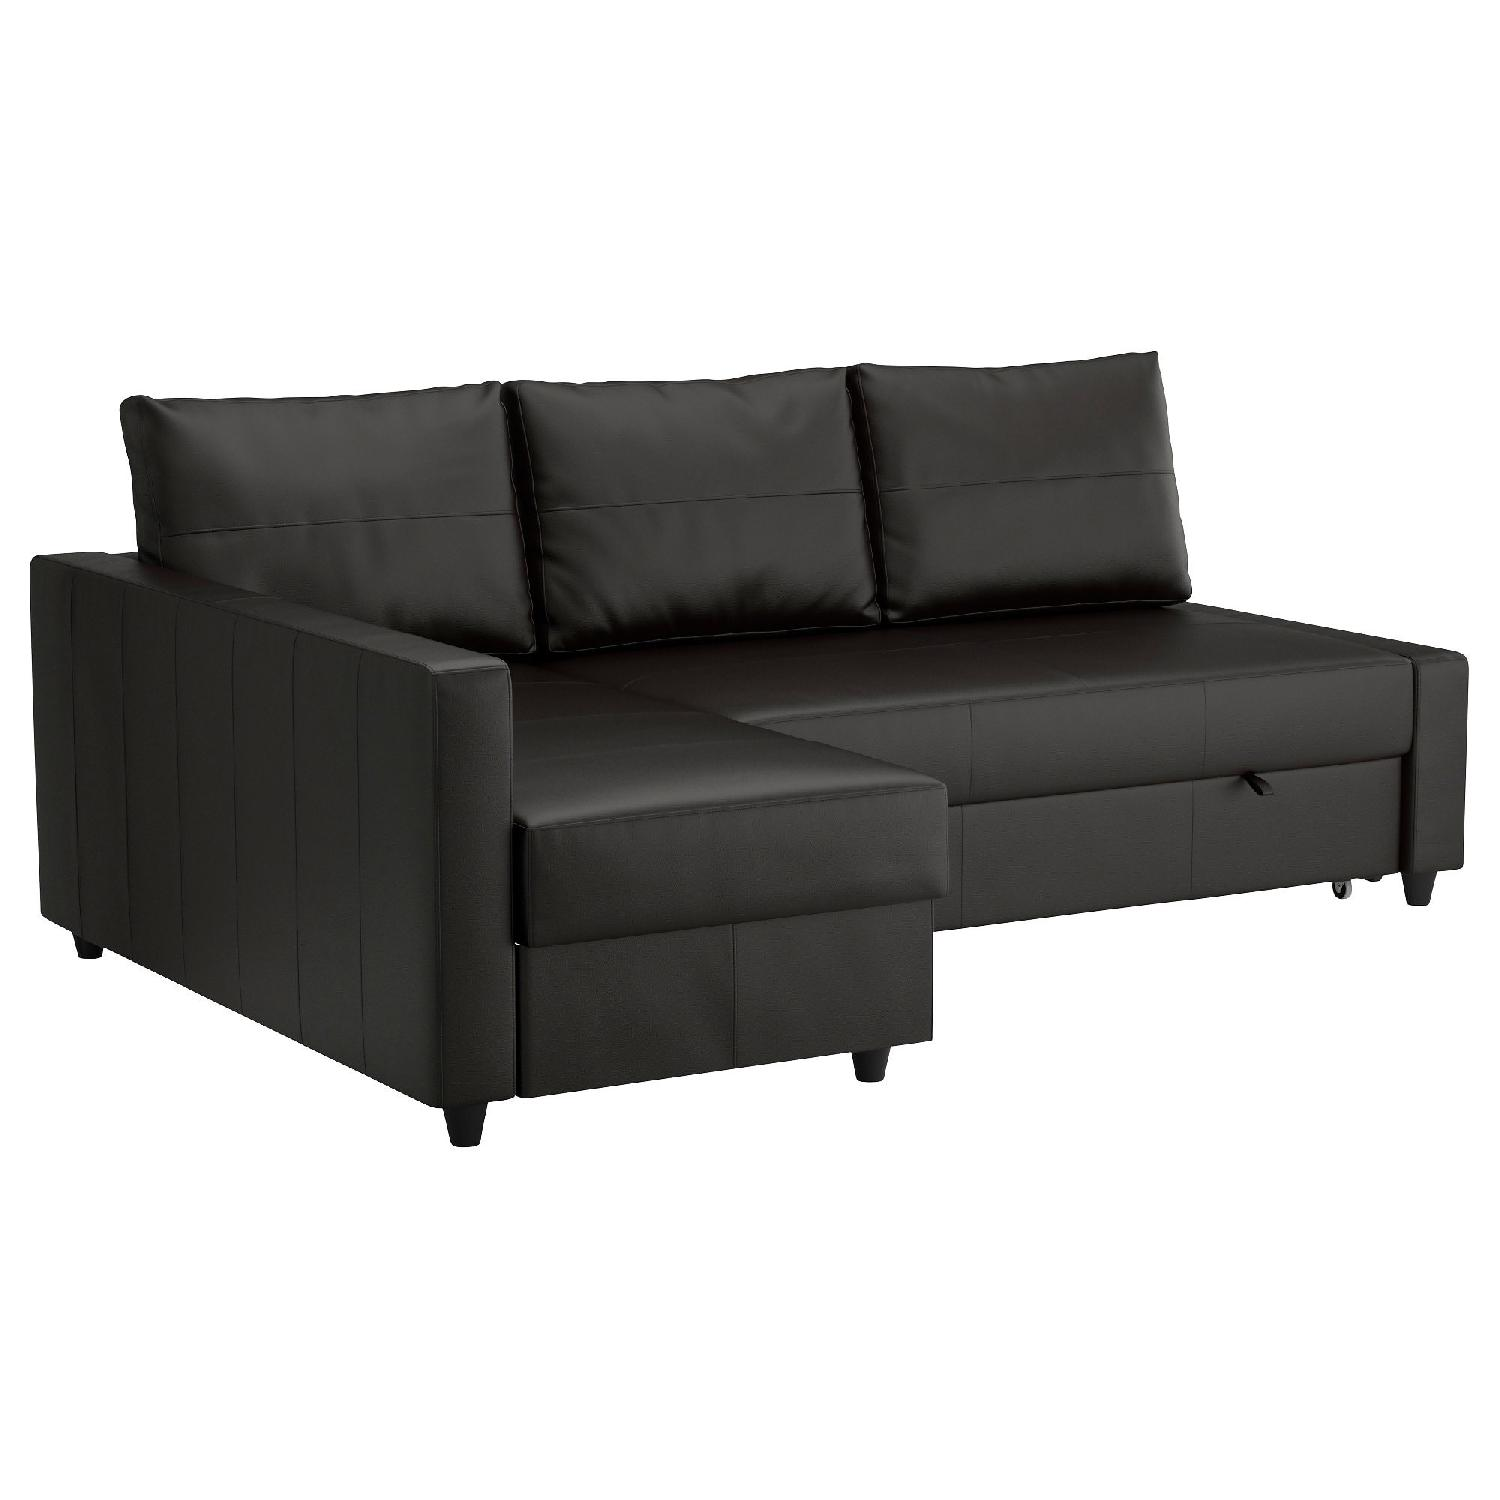 ikea sofa sleeper sectional bed to buy friheten w storage aptdeco slide